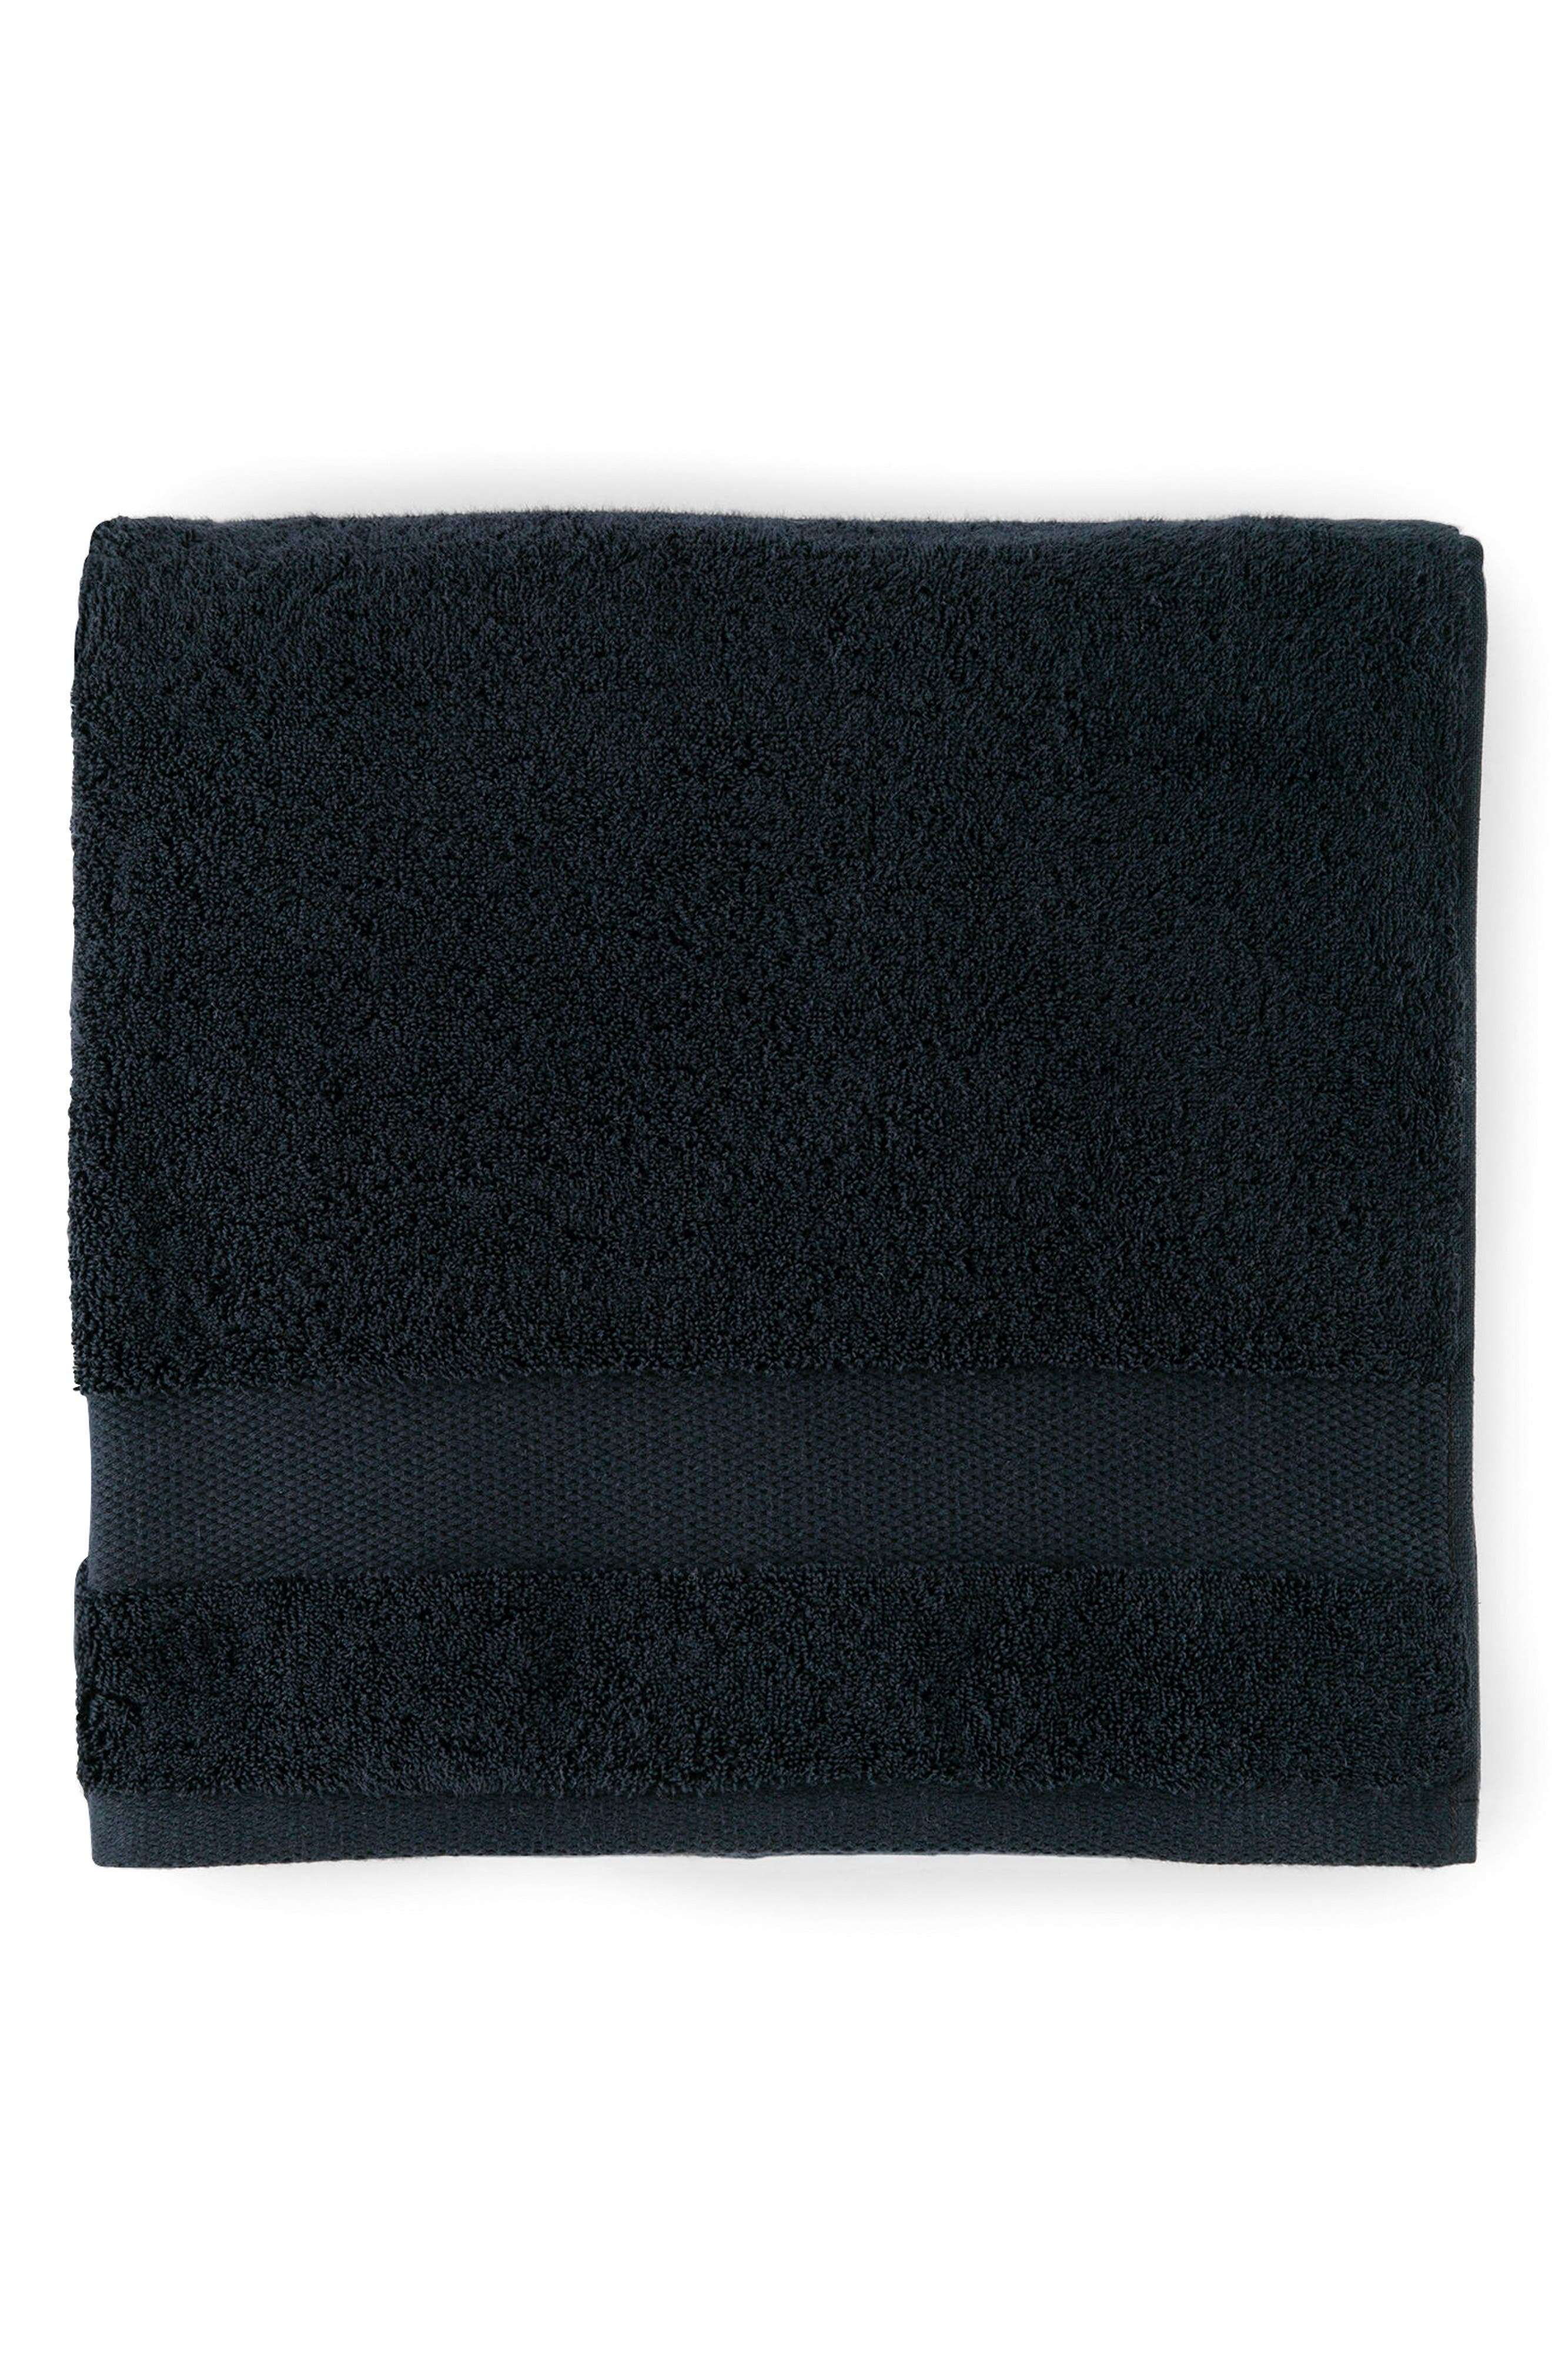 Bello Hand Towel,                         Main,                         color, Black